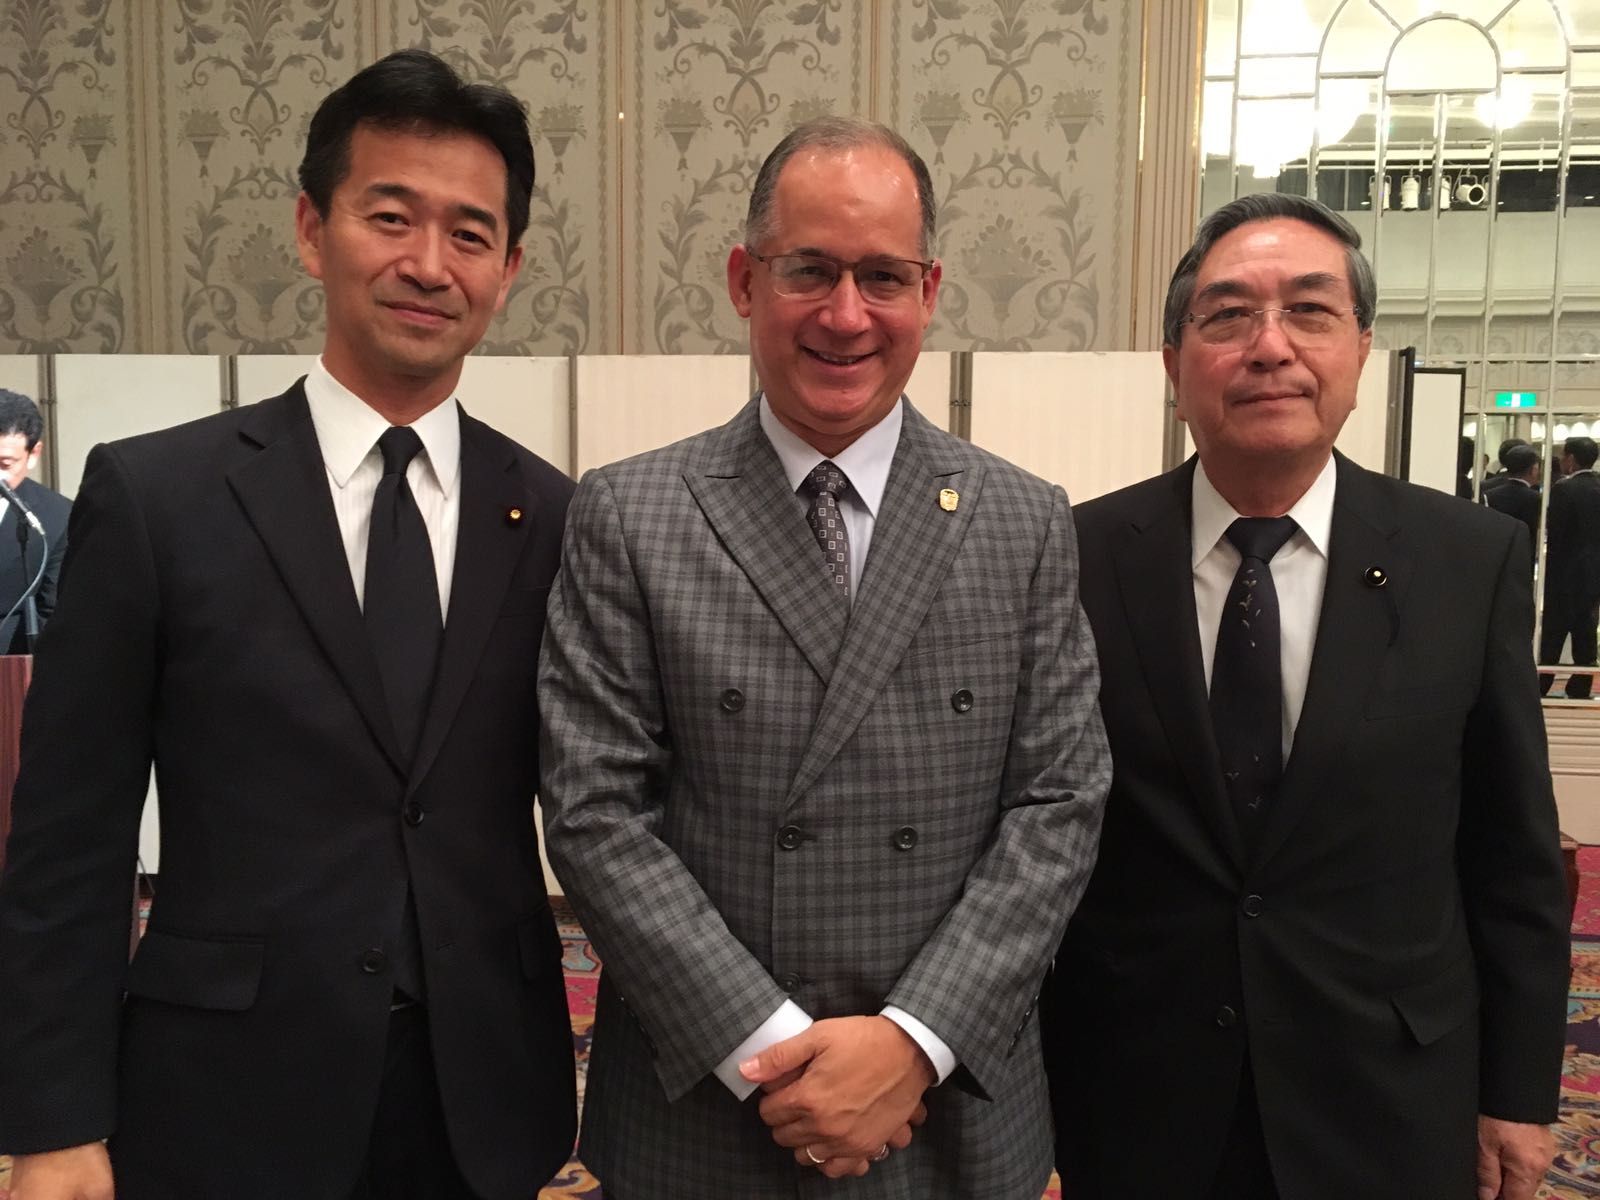 From the right, H.E. Mitsunari Okamoto, Vice-Minister of Foreign Affairs of Japan, Ambassador Diaz and Mr. Yasuo Yamaki, Chairman of Municipal Assembly of Hiroshima city.